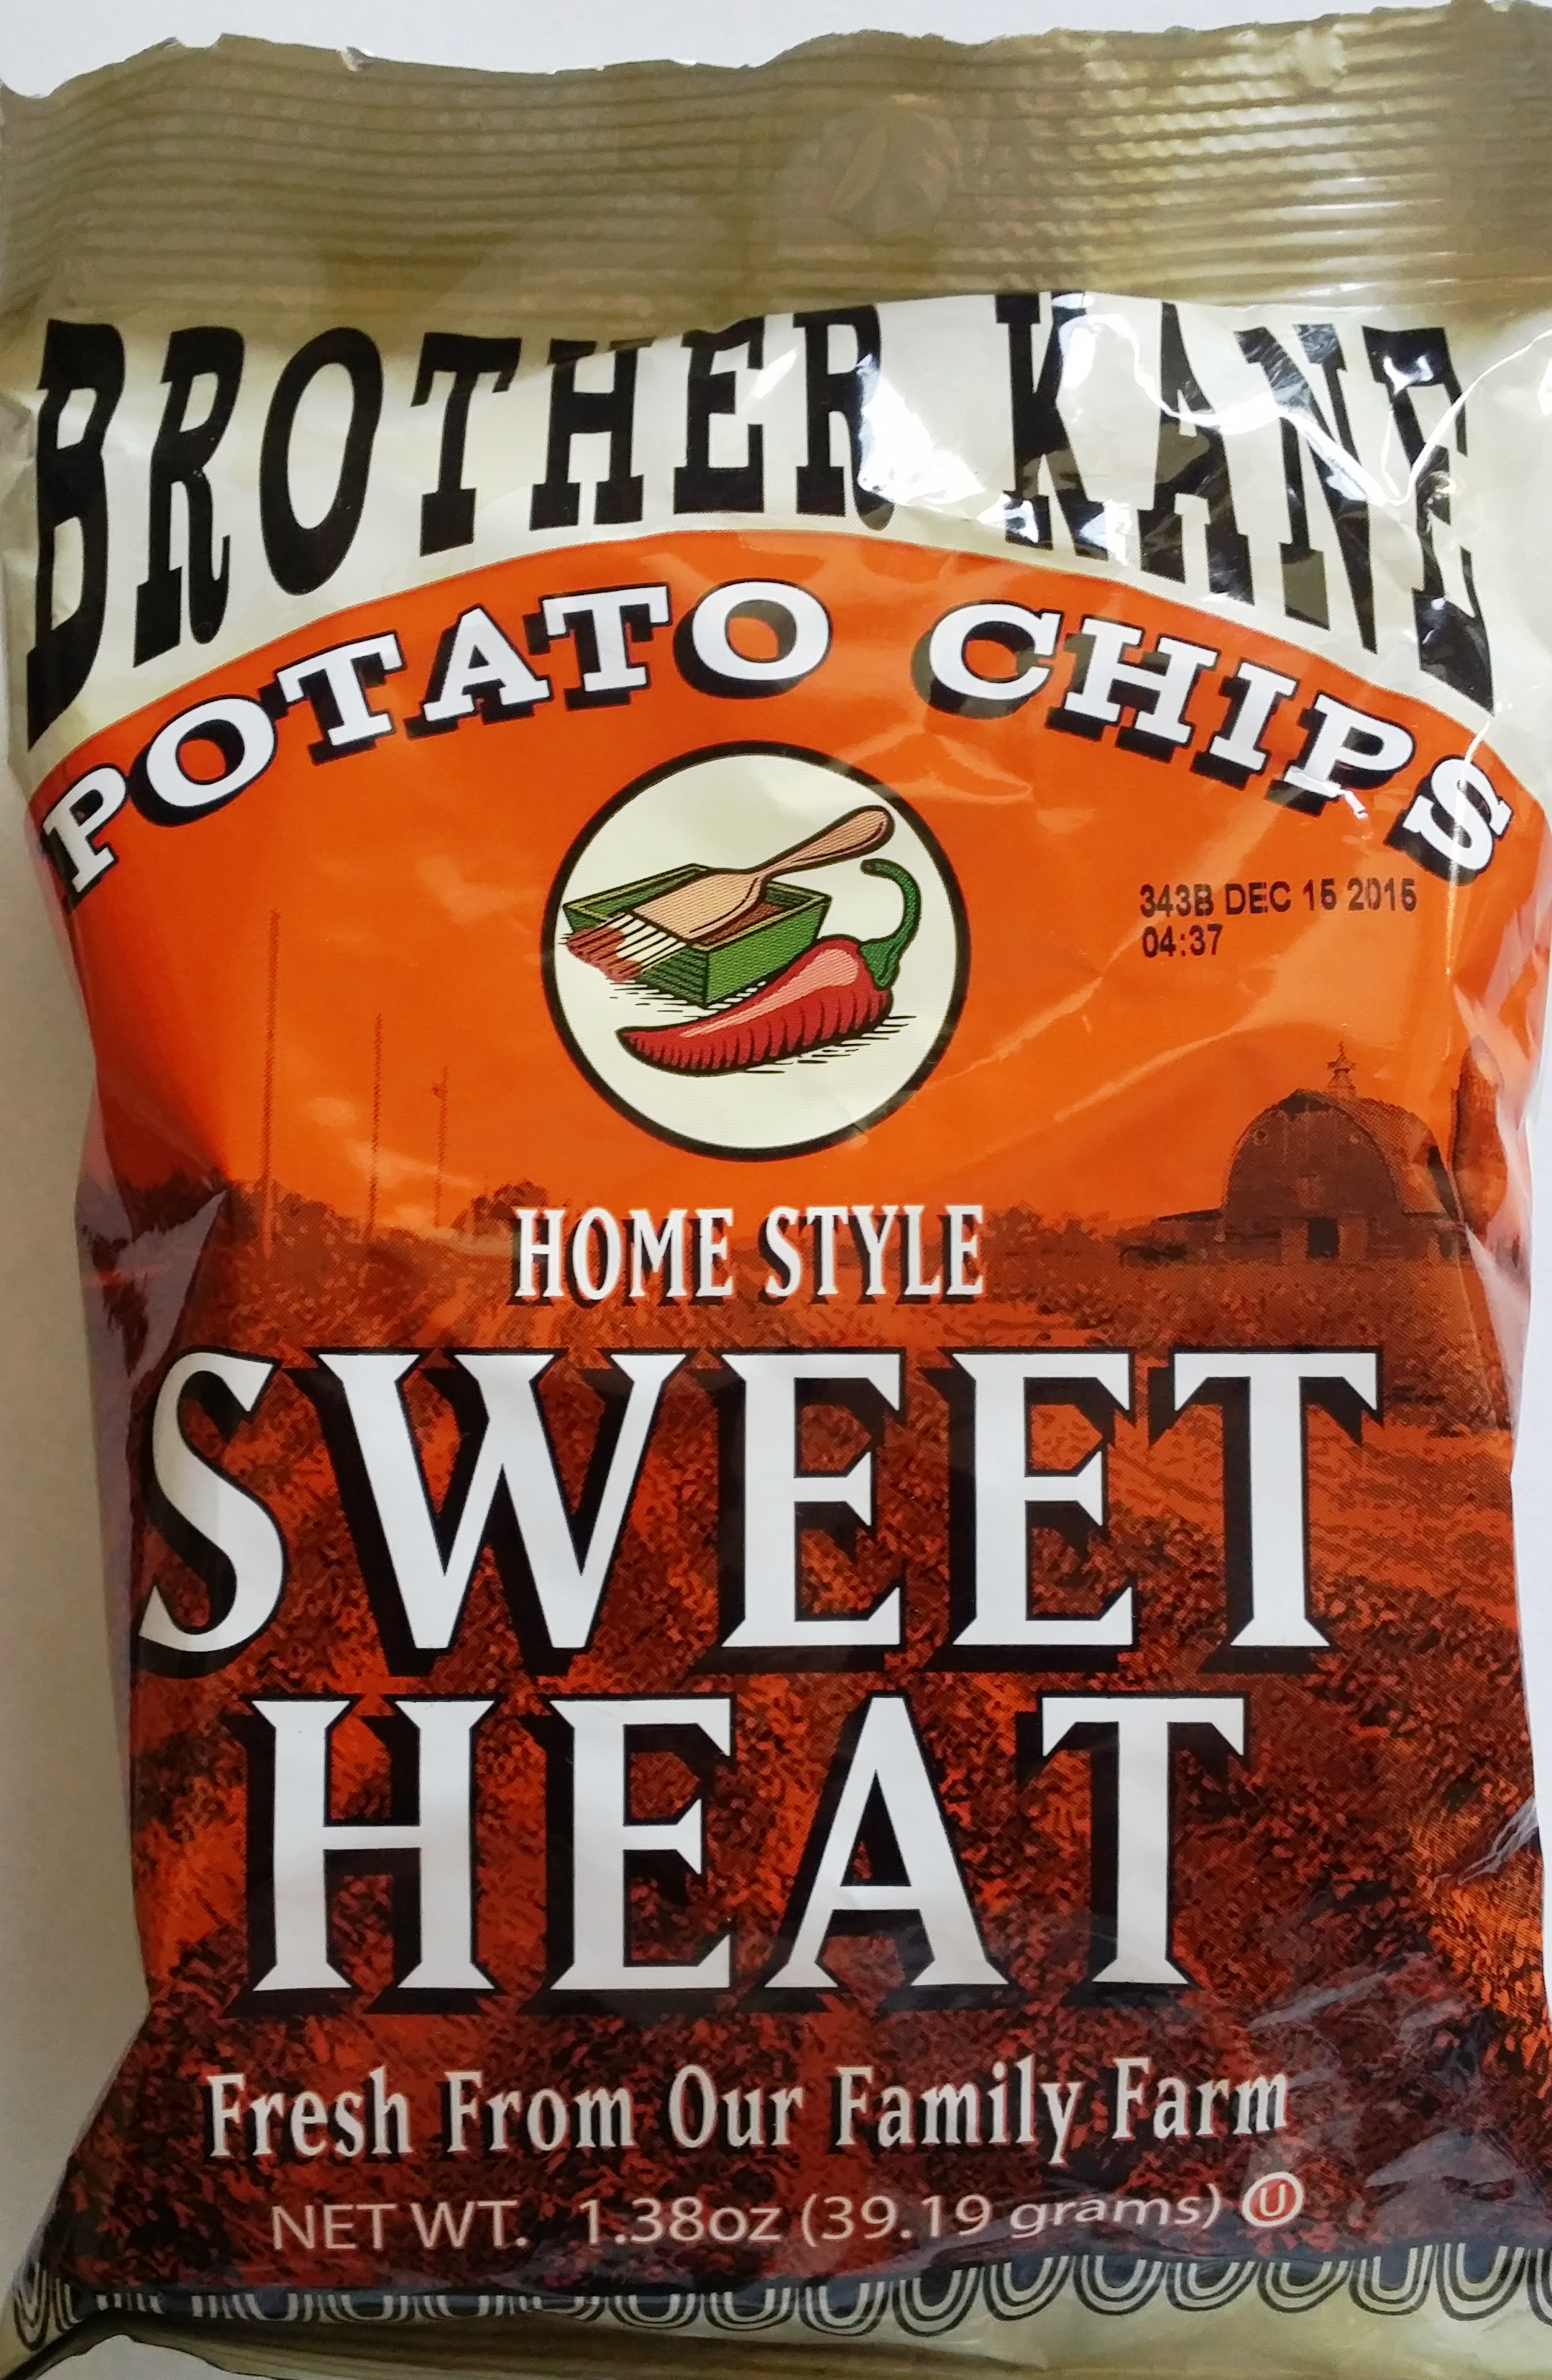 Brother Kane Sweet Heat Potato Chip